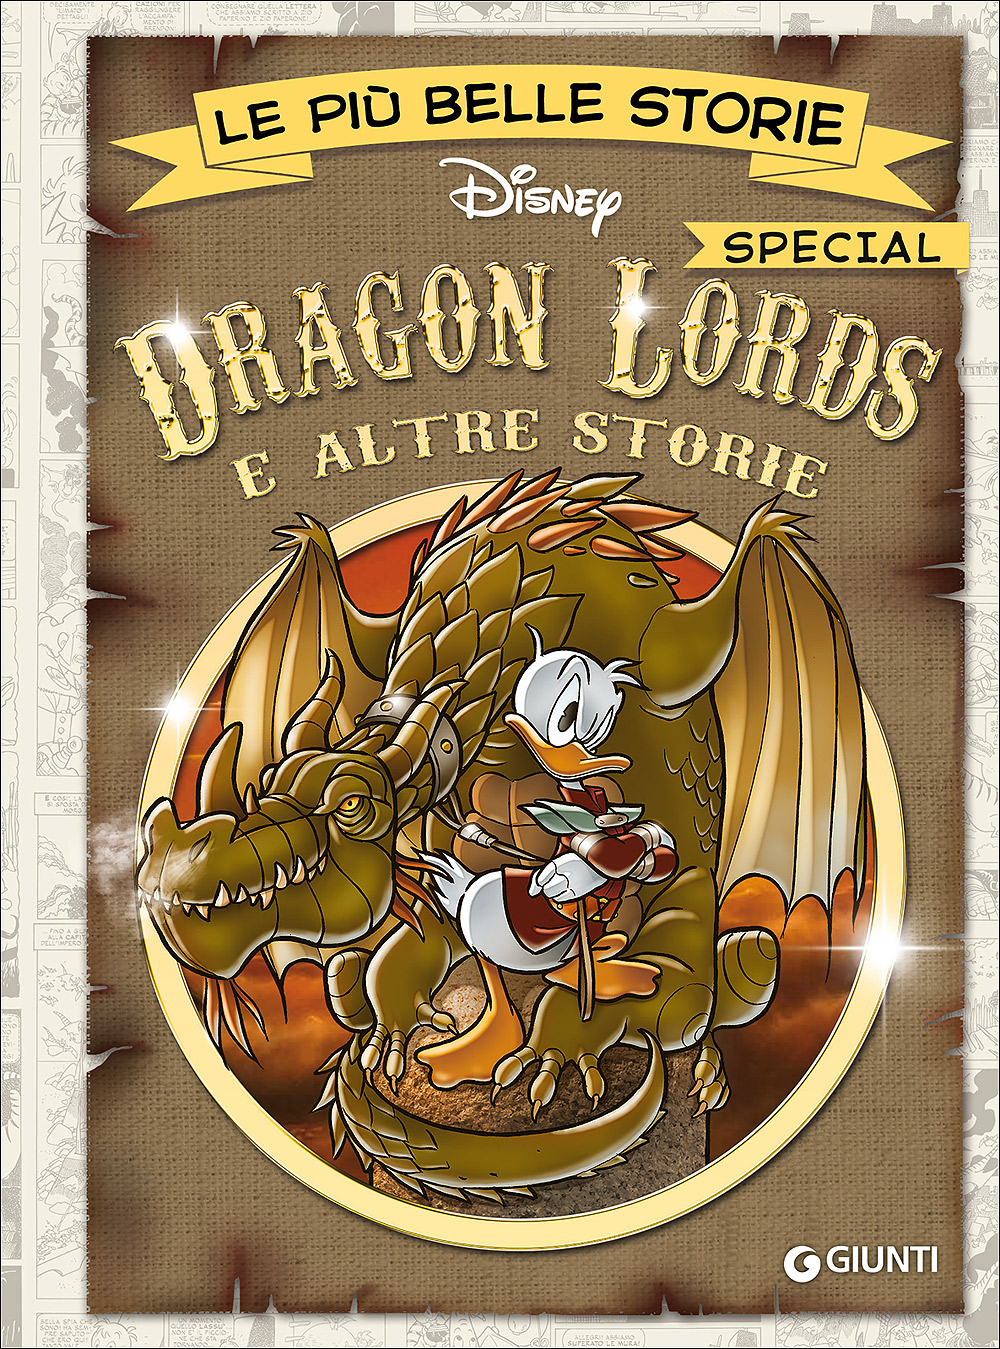 Cover Le più belle storie Disney - Special Edition 3 - Dragon Lords e altre storie